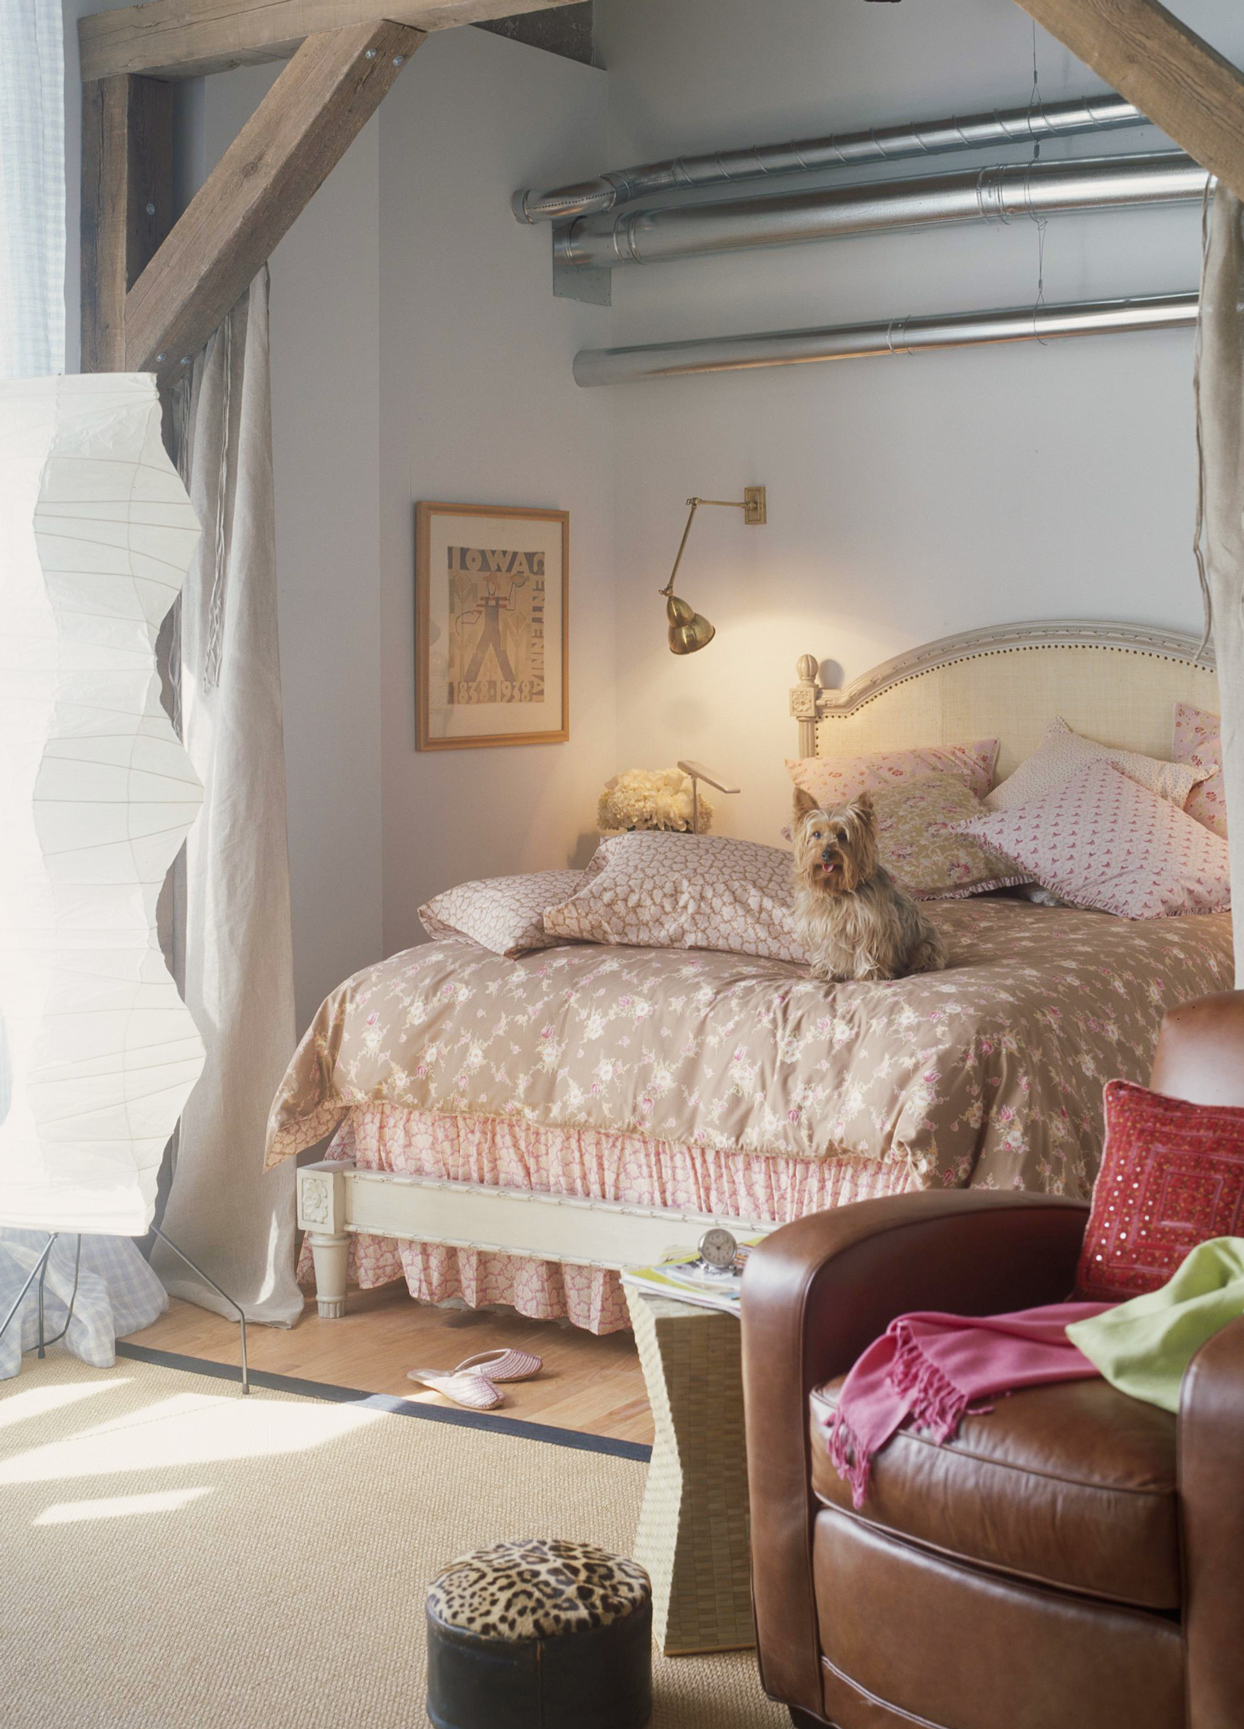 soft color bedding with dog